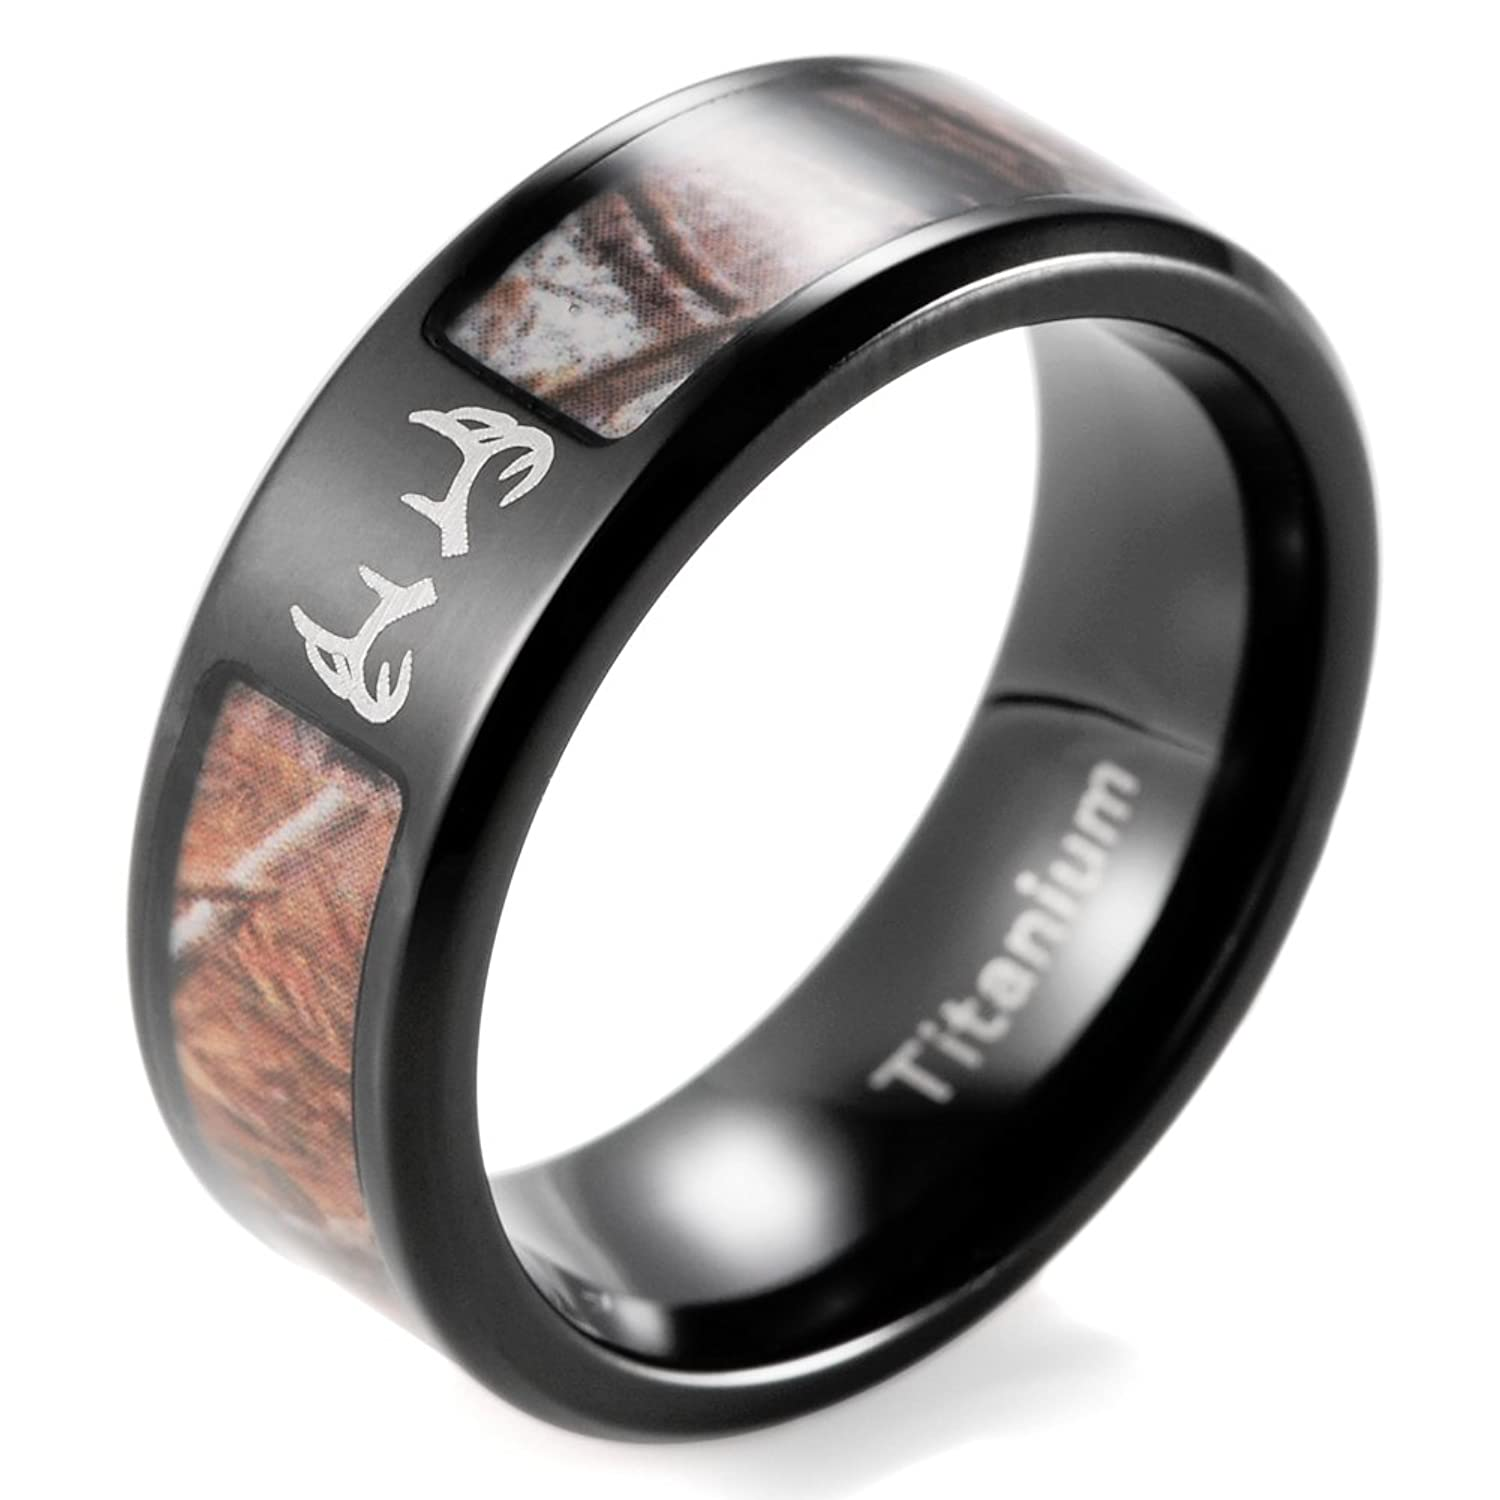 deer options choose for rings from the antler gunnison wedding men camo